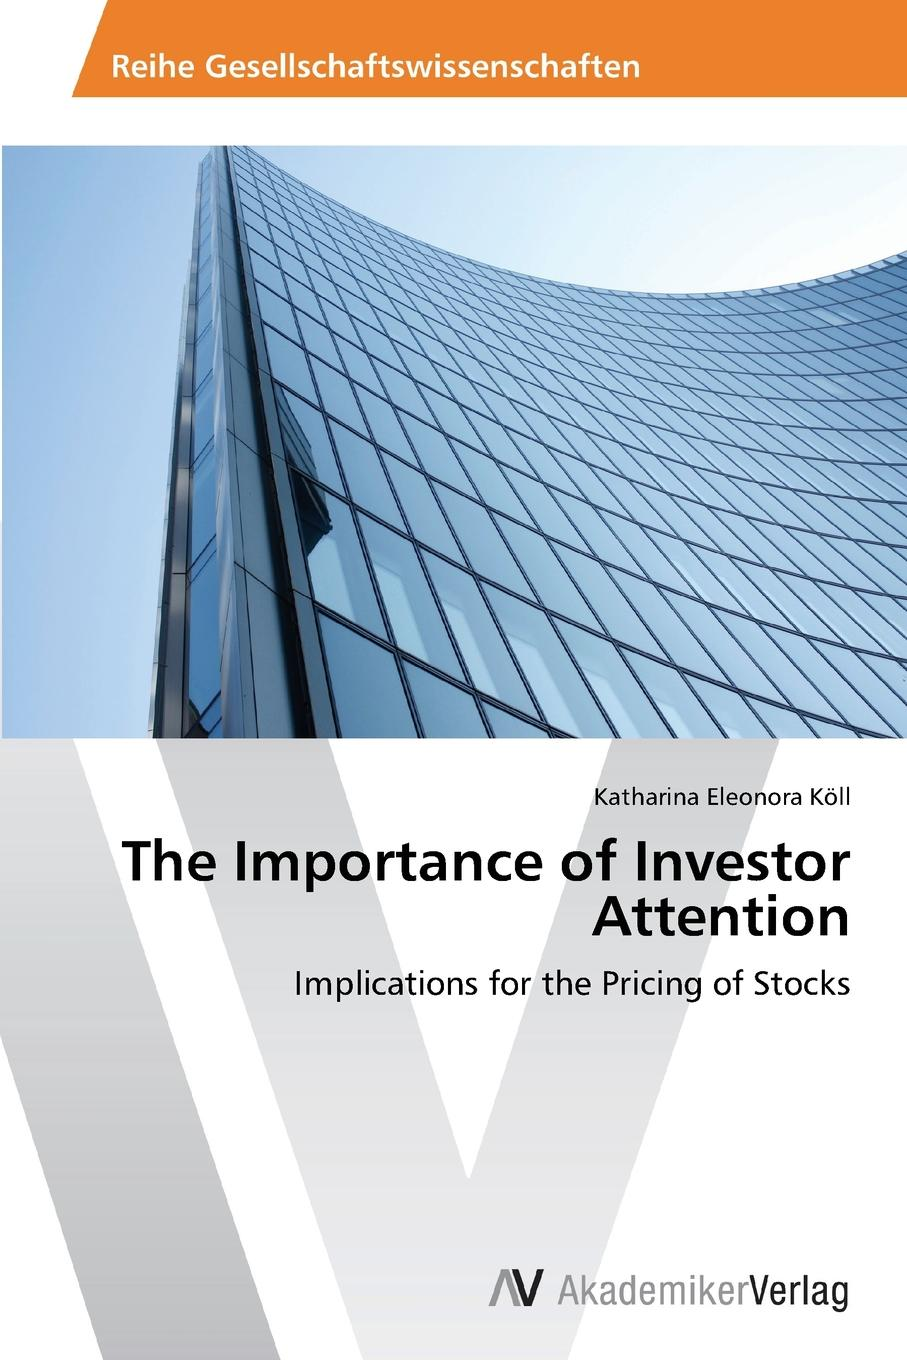 Köll Katharina Eleonora The Importance of Investor Attention john price the conscious investor profiting from the timeless value approach